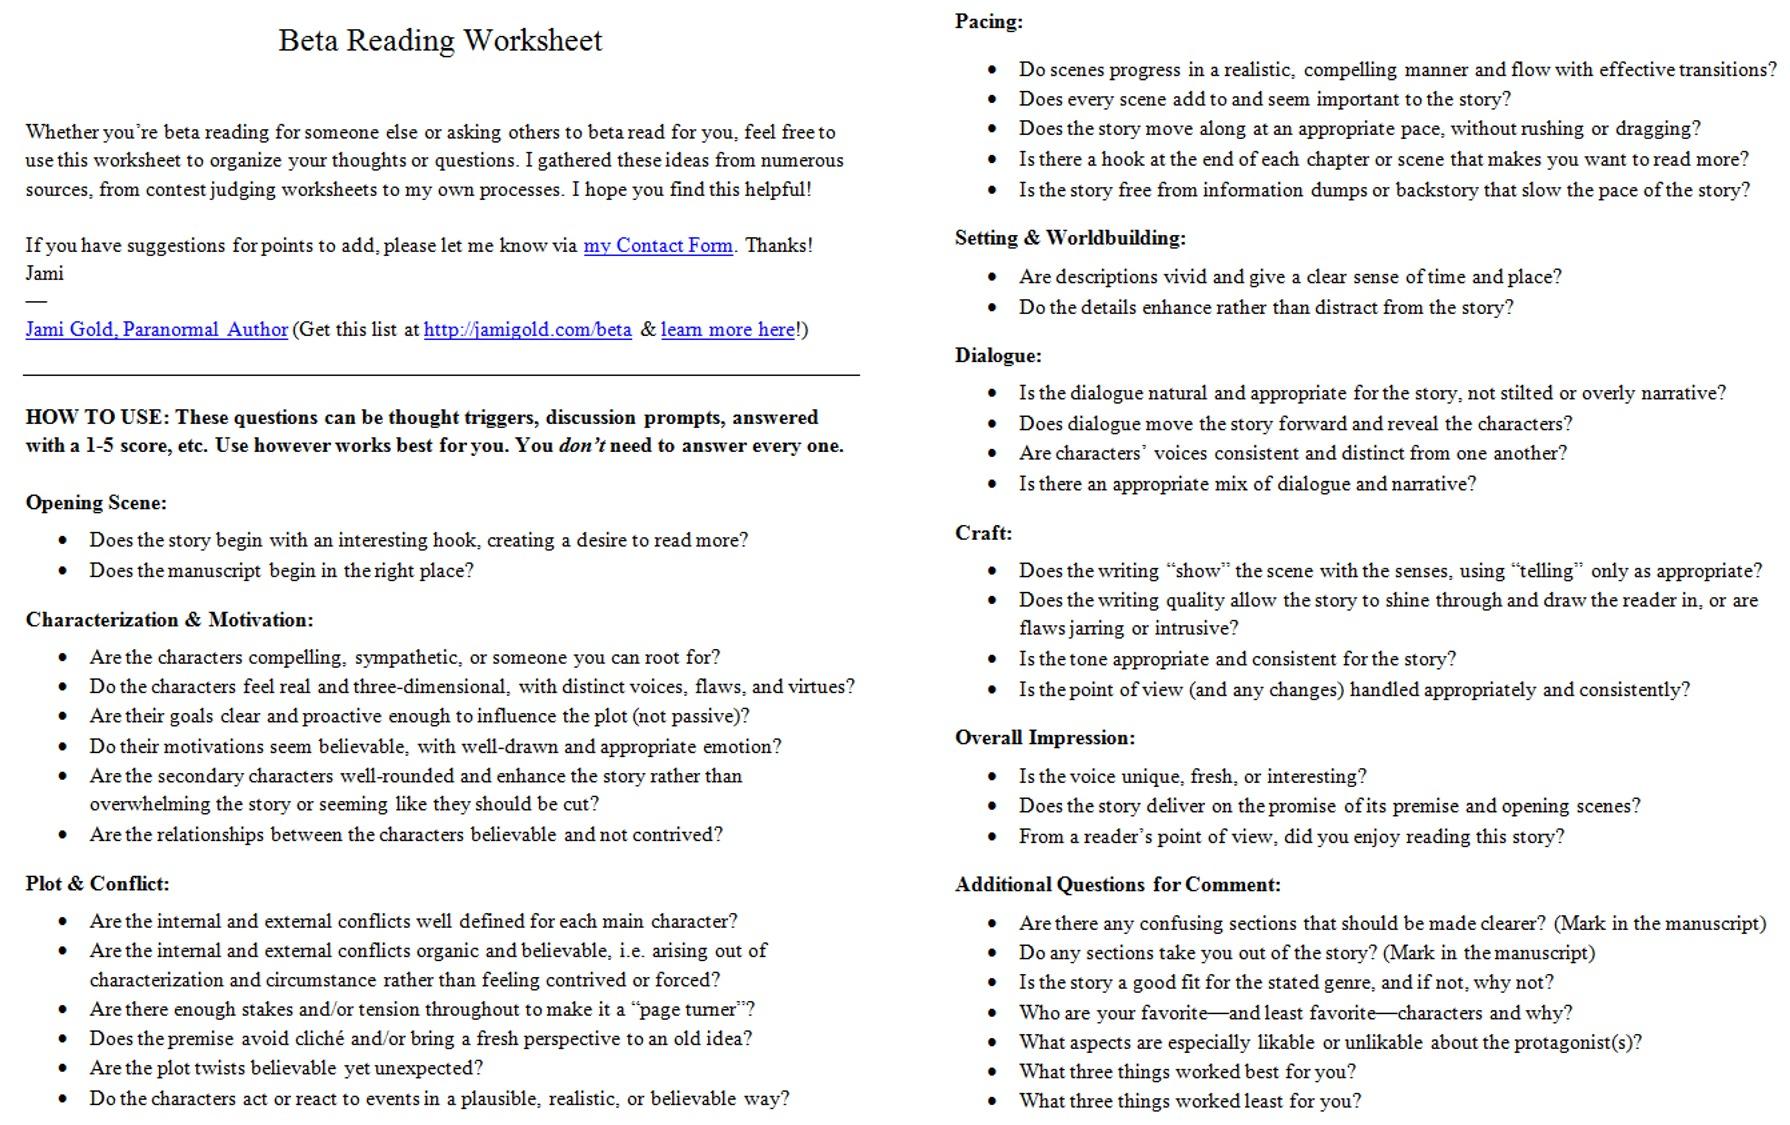 Aldiablosus  Pleasant Worksheets For Writers  Jami Gold Paranormal Author With Glamorous Screen Shot Of The Twopage Beta Reading Worksheet With Attractive Payroll Worksheet Also Were And Where Worksheets In Addition Vectors And Projectiles Worksheet And Homeschooling Worksheets For Kindergarten As Well As My Favorite Food Worksheet Additionally Thai Alphabet Worksheet From Jamigoldcom With Aldiablosus  Glamorous Worksheets For Writers  Jami Gold Paranormal Author With Attractive Screen Shot Of The Twopage Beta Reading Worksheet And Pleasant Payroll Worksheet Also Were And Where Worksheets In Addition Vectors And Projectiles Worksheet From Jamigoldcom